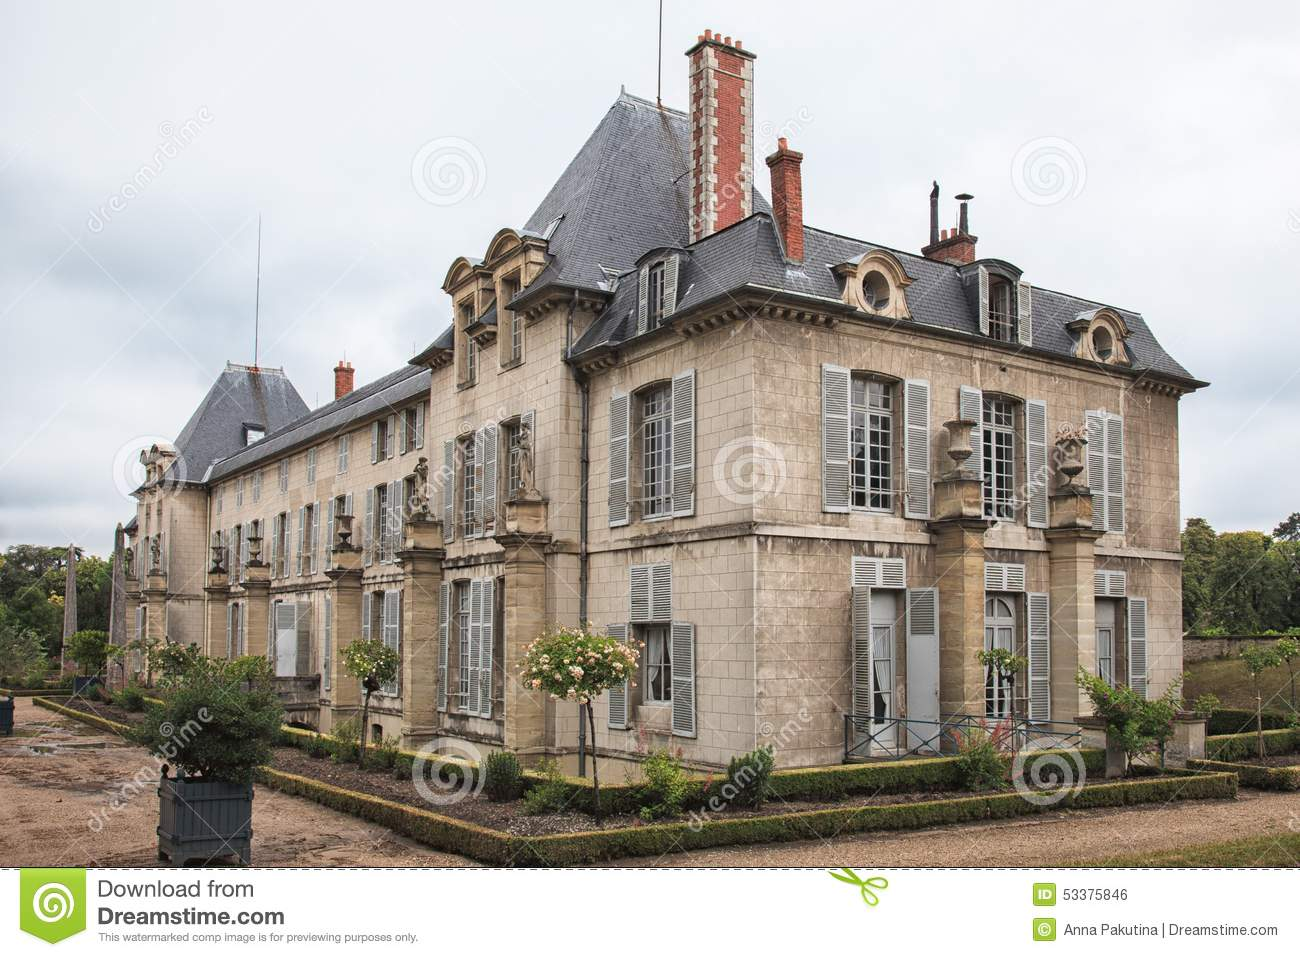 Chateau de malmaison not far from paris france stock photo image 53375846 - Chateau de beauharnais ...